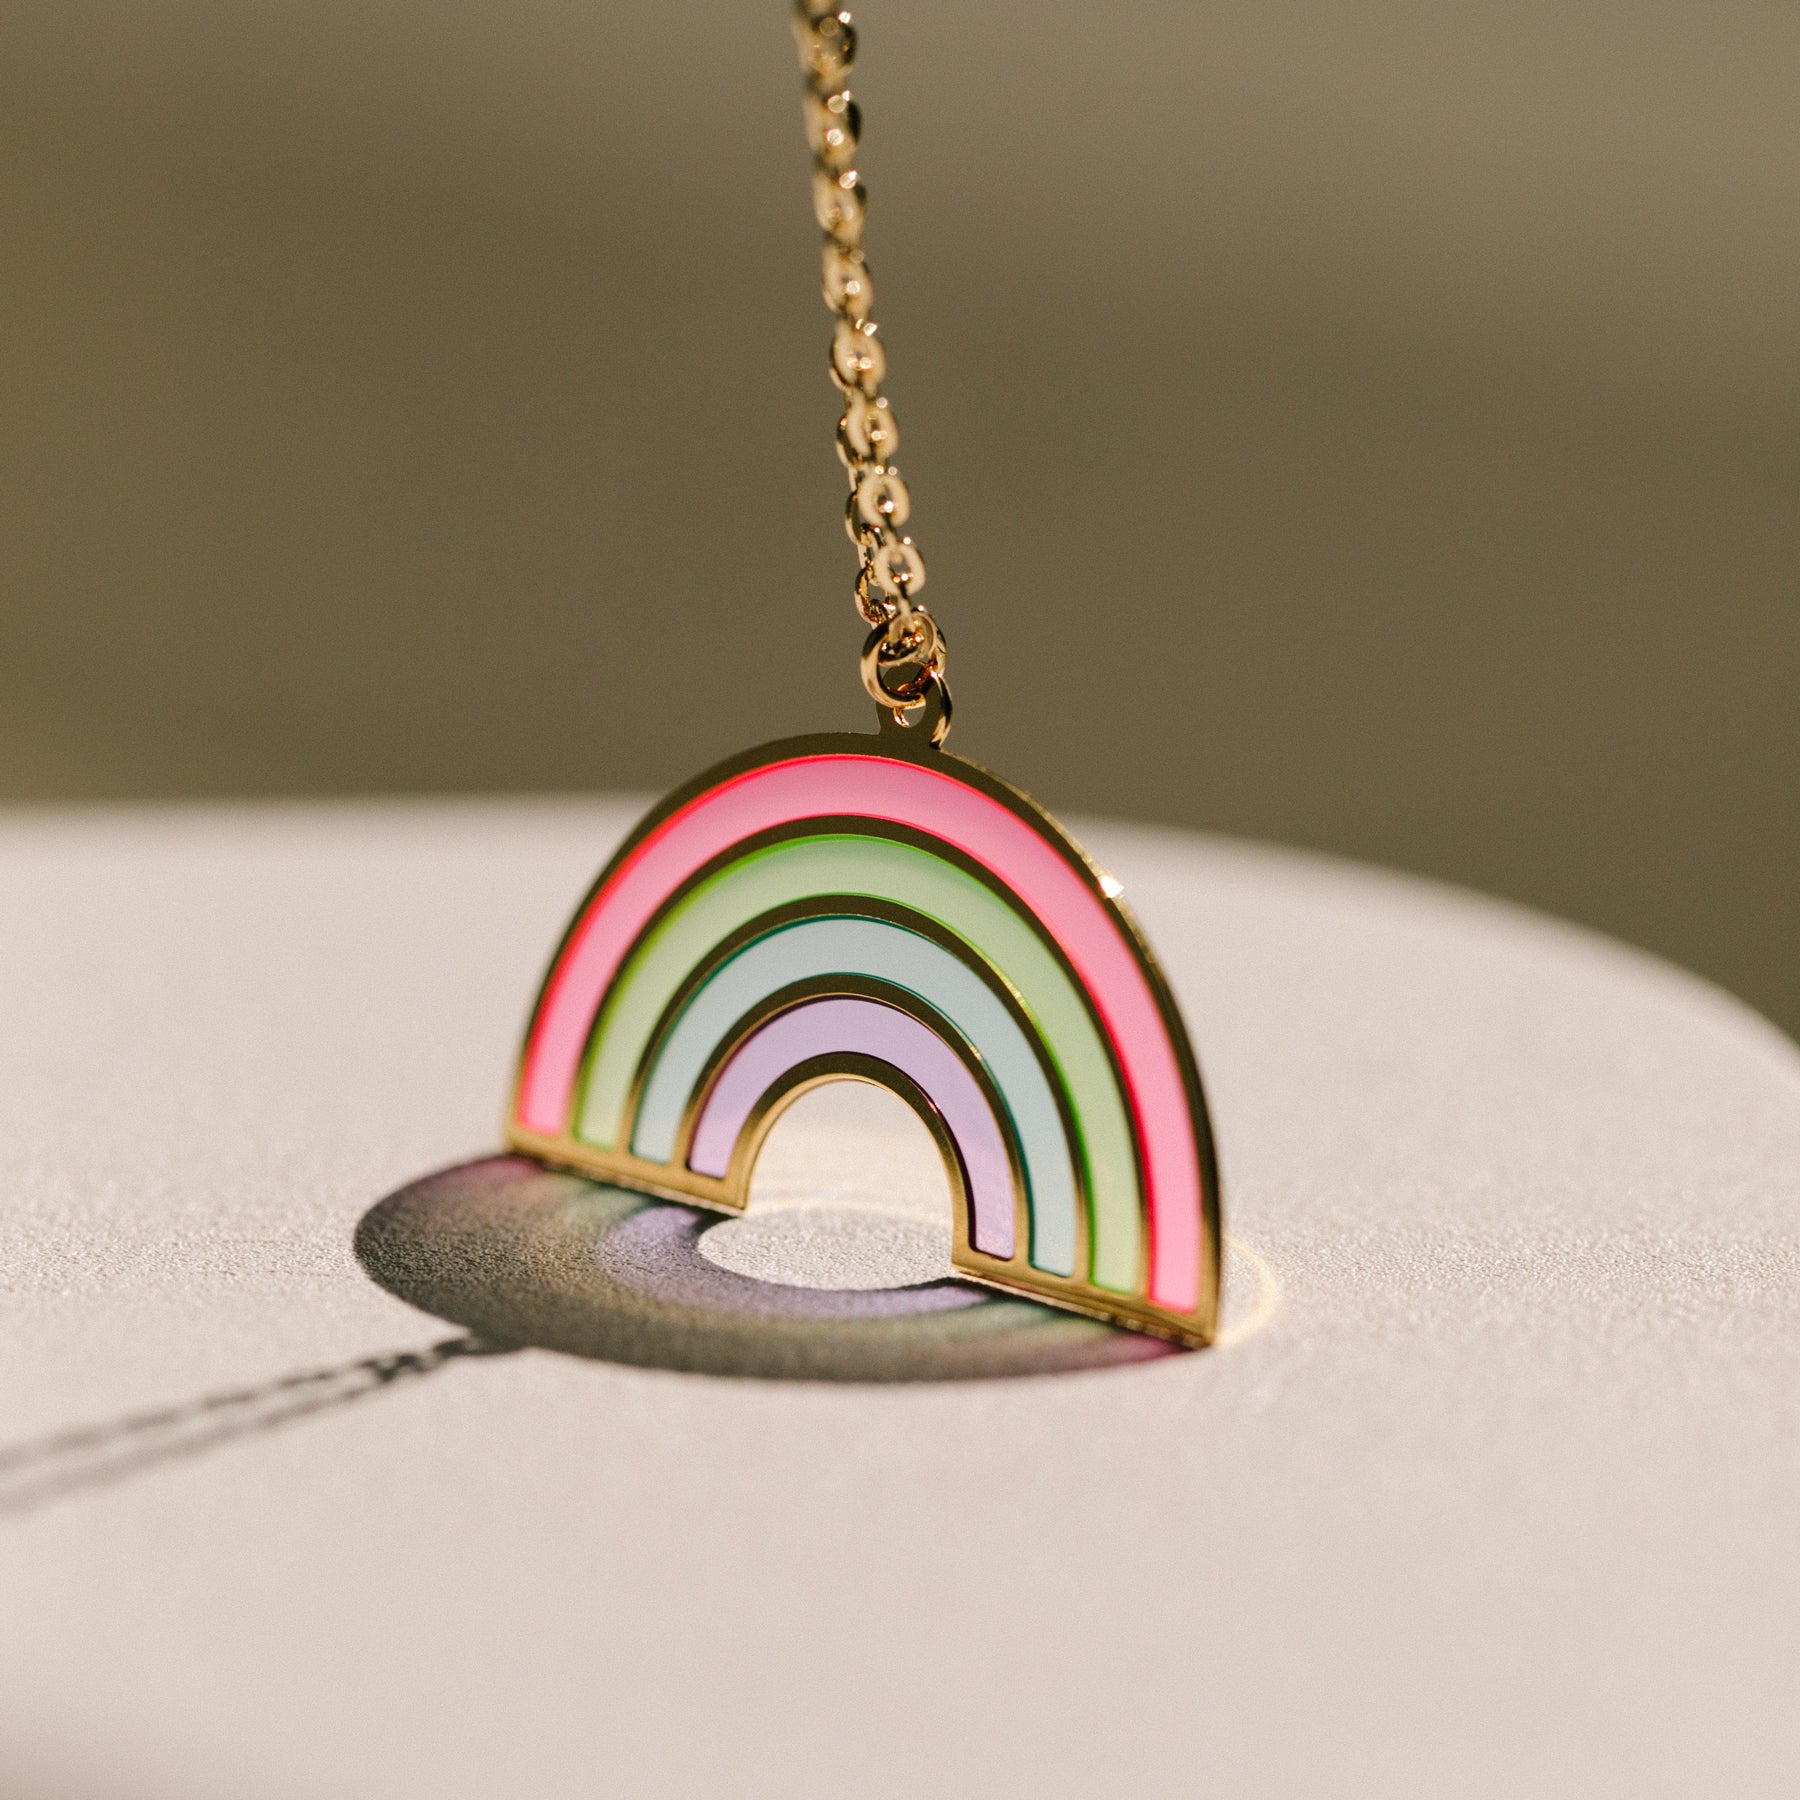 Rainbow Translucent Necklace